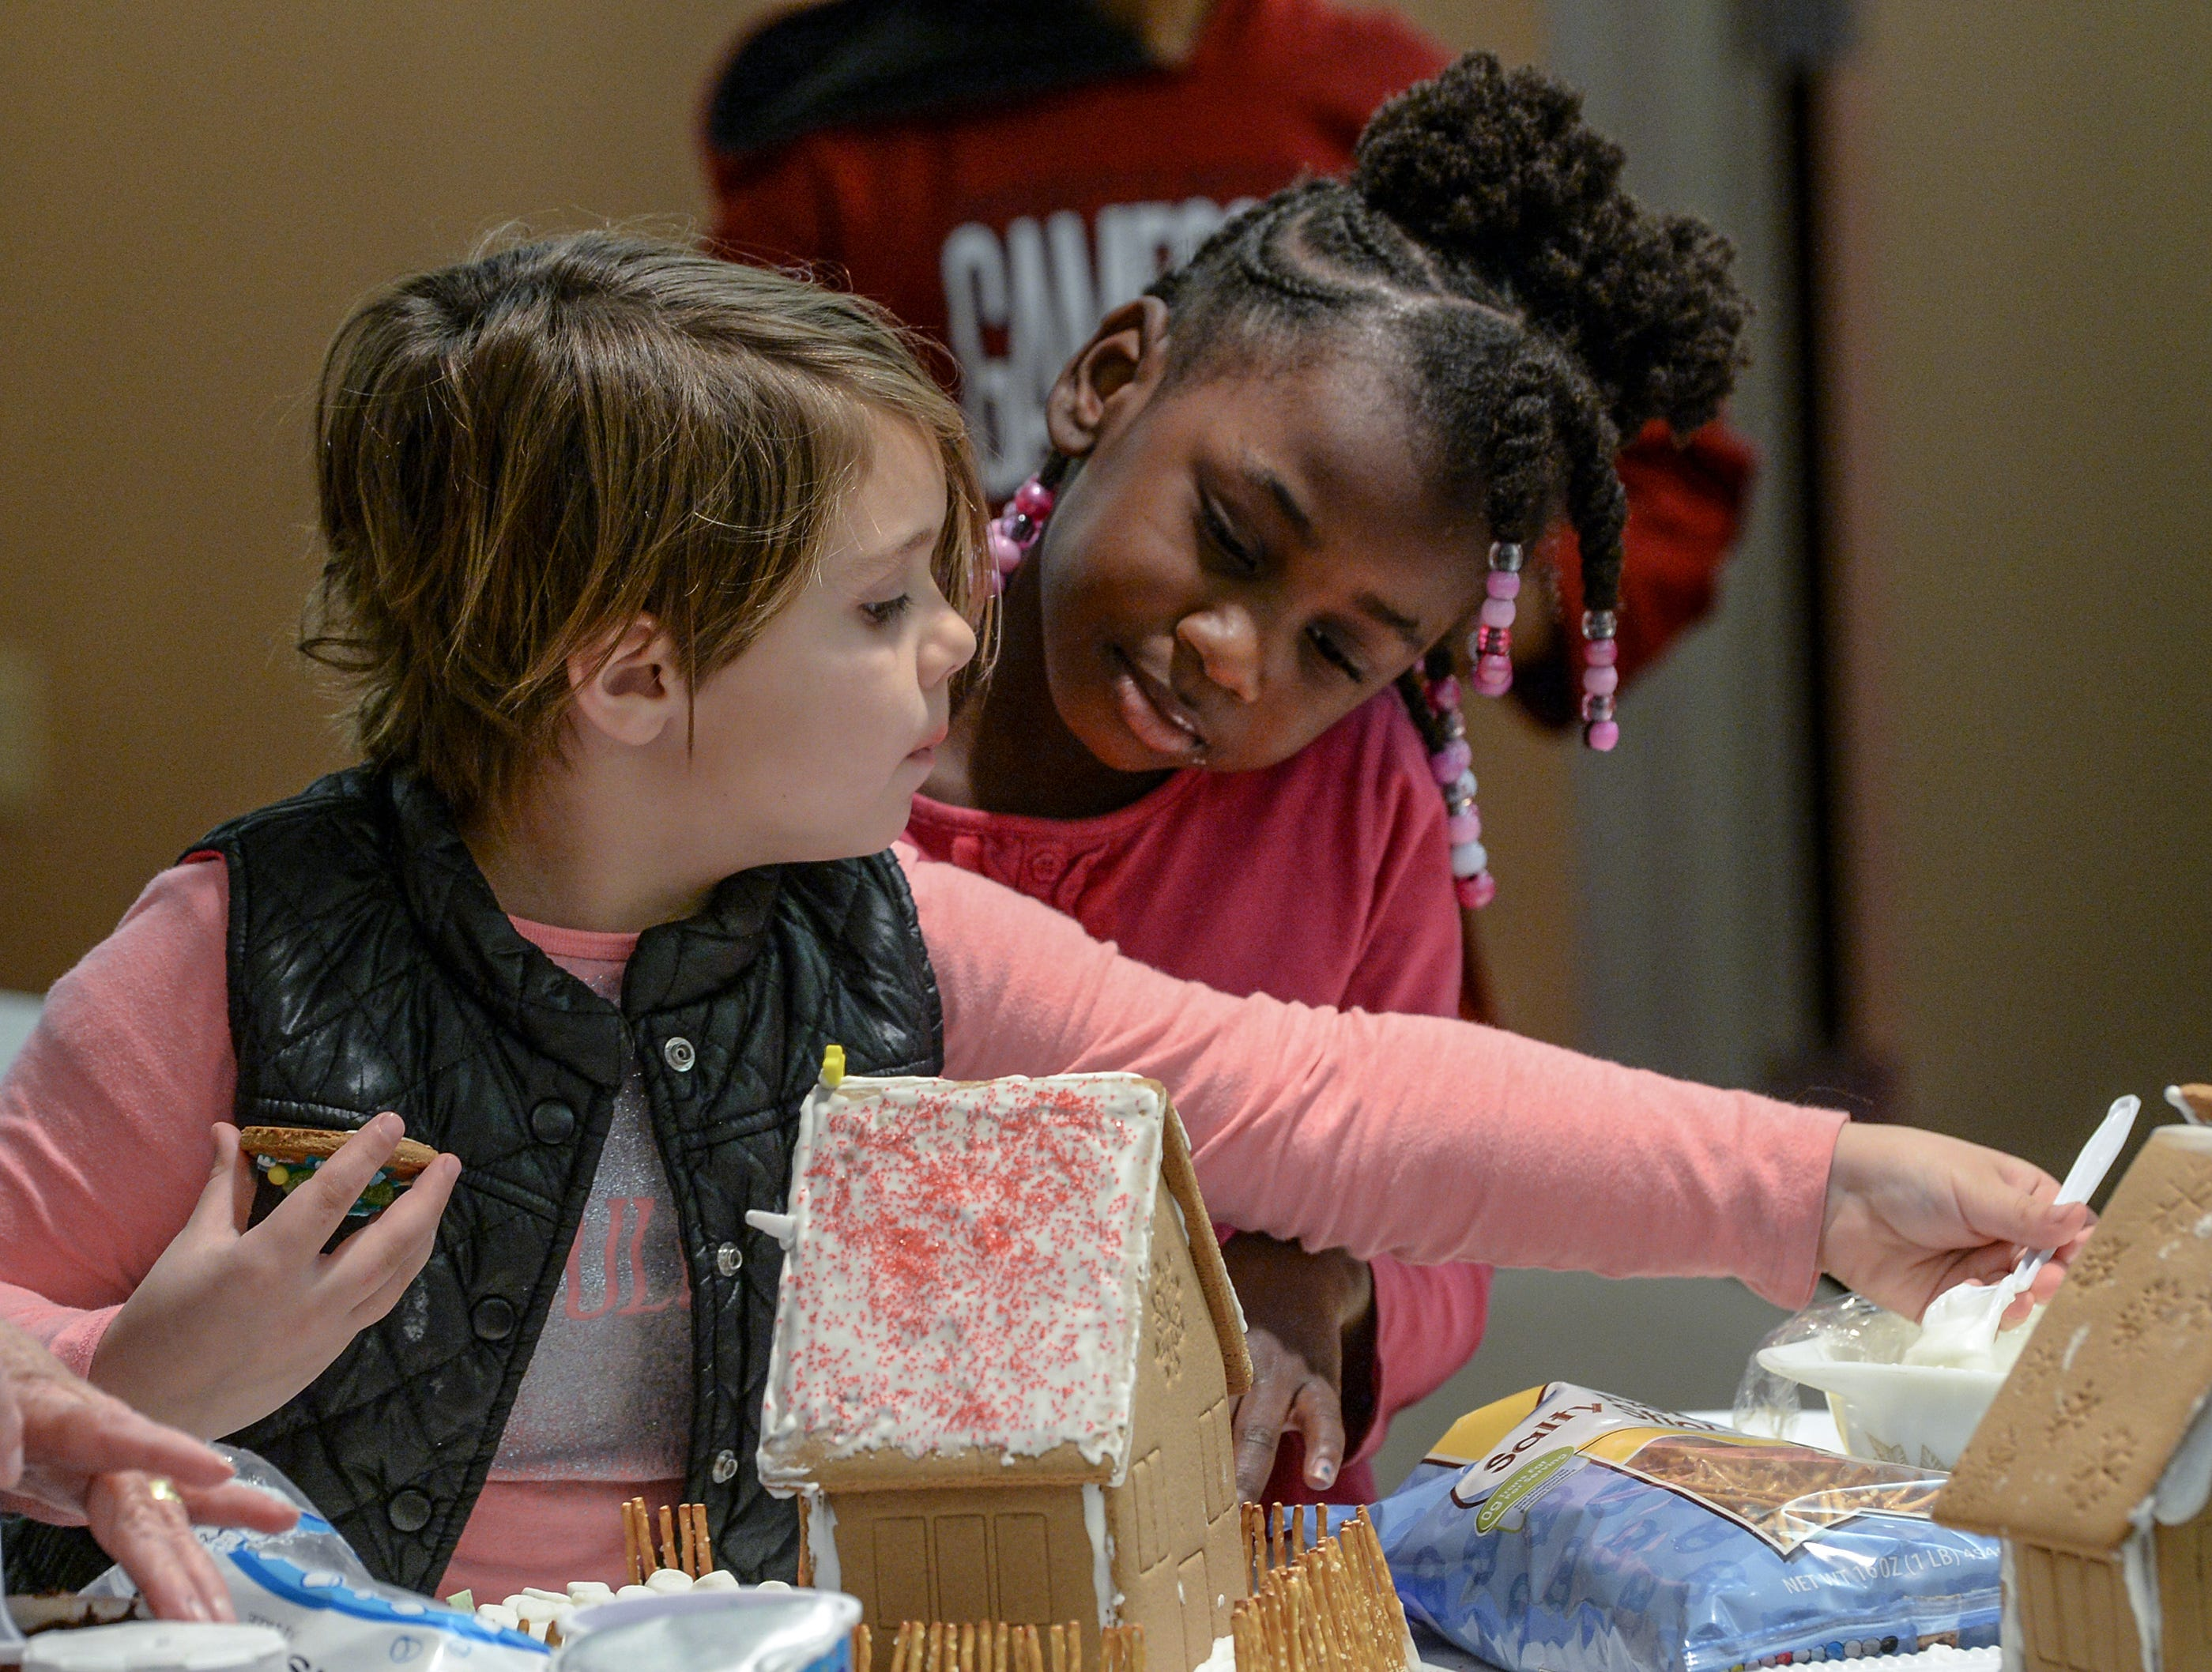 Annabeth Kolb, left, and Sa'Mora Hemphill, right make a  gingerbread house during the Big Brothers Big Sisters of the Upstate gingerbread house decorating party at the Anderson County Museum in Anderson on Tuesday. Older mentors spend six hours or more a month with their little brother or sister, including the group activity with materials donated by local businesses. The group matches up mentors in Anderson, Oconee, and Pickens Counties.